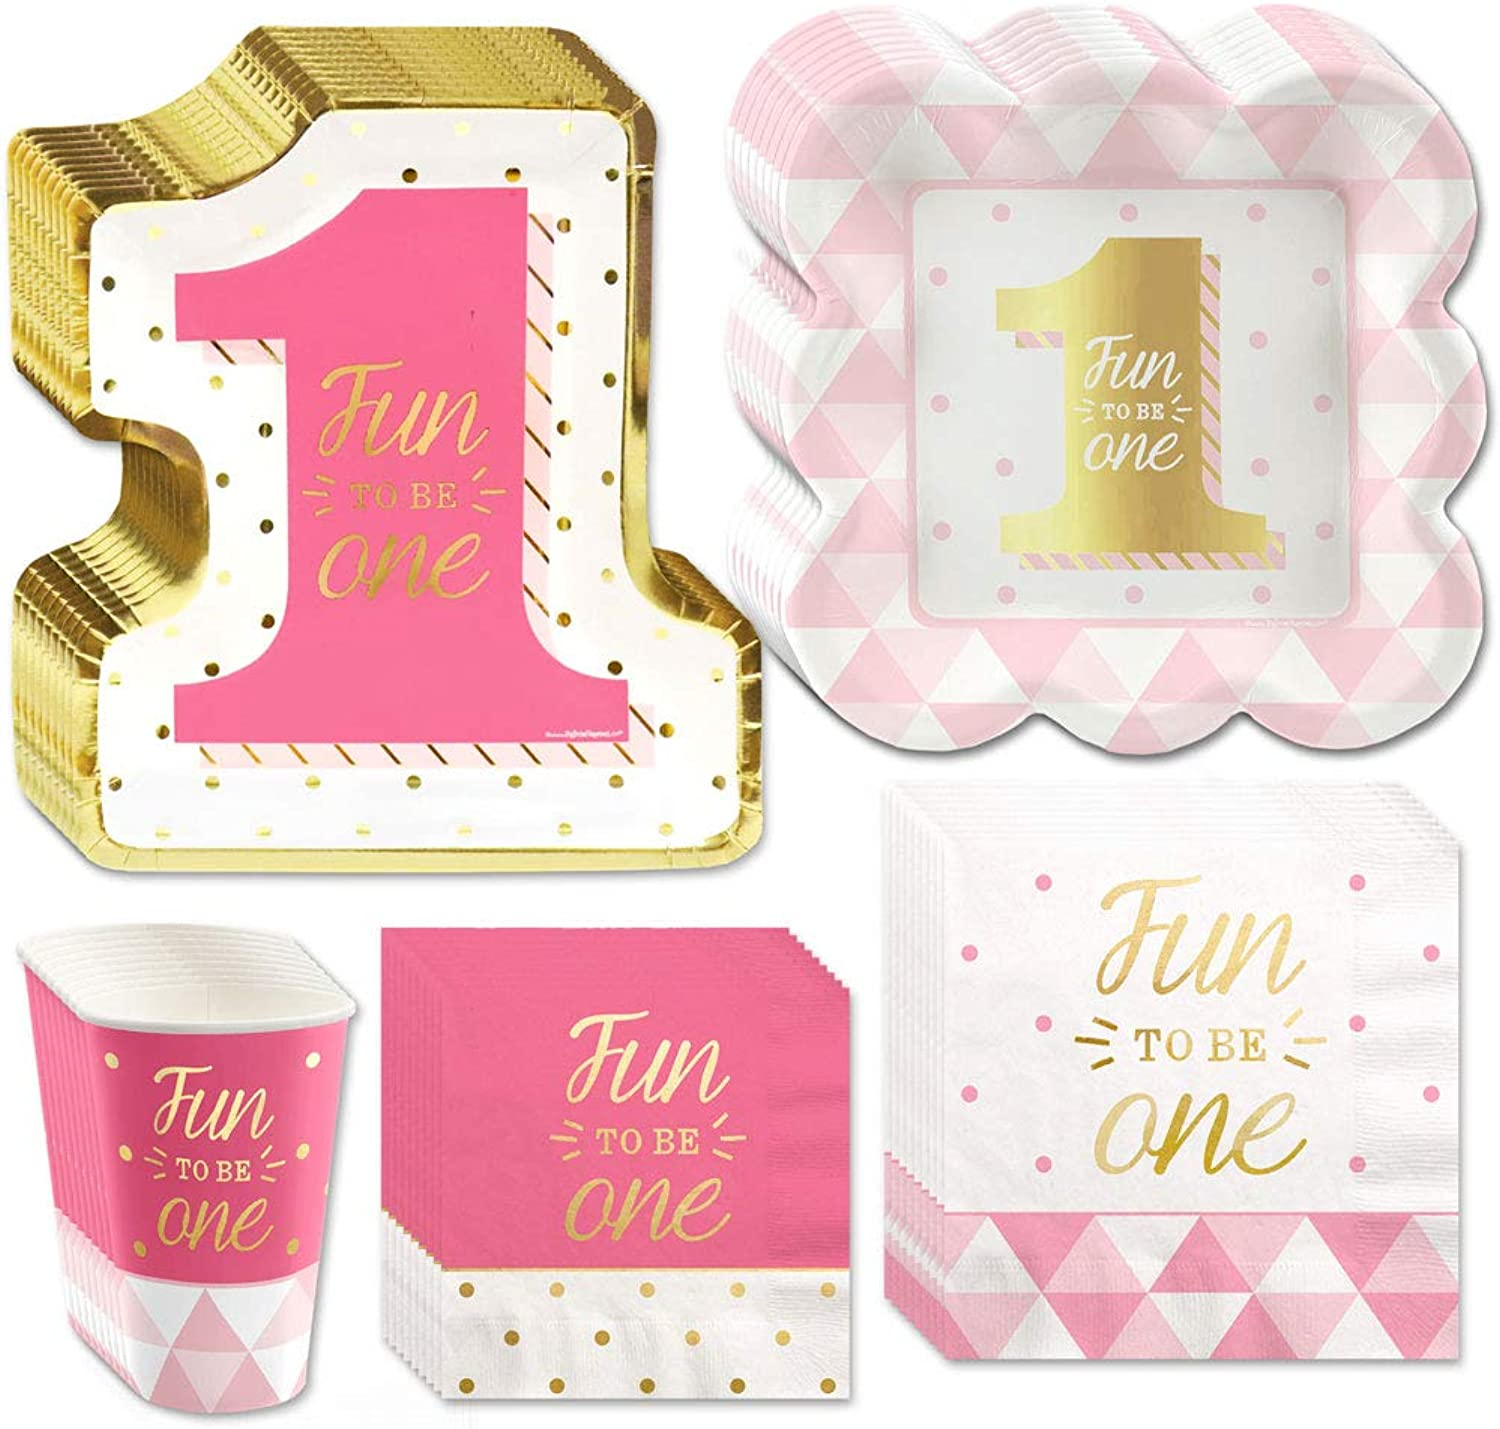 Big Dot of Happiness Fun to be One - 1st Birthday Girl with gold Foil - Party Tableware Plates, Cups, Napkins - Bundle for 32